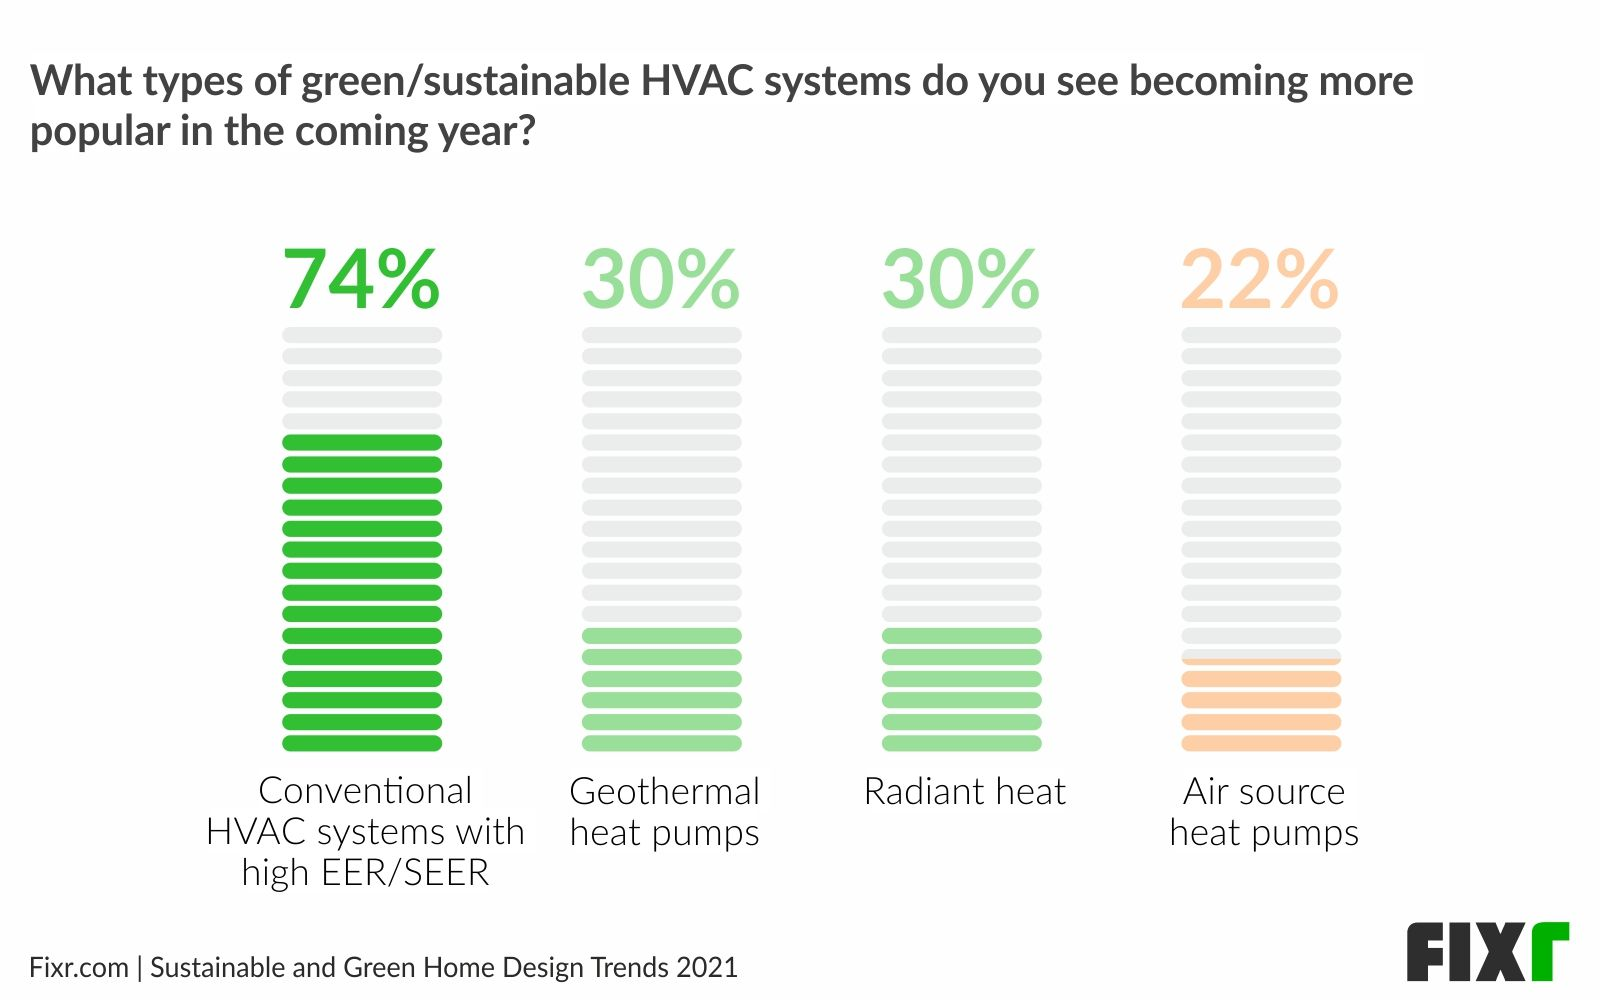 Conventional HVAC Systems with High EER/SEER Are The Most Popular Green Energy Options